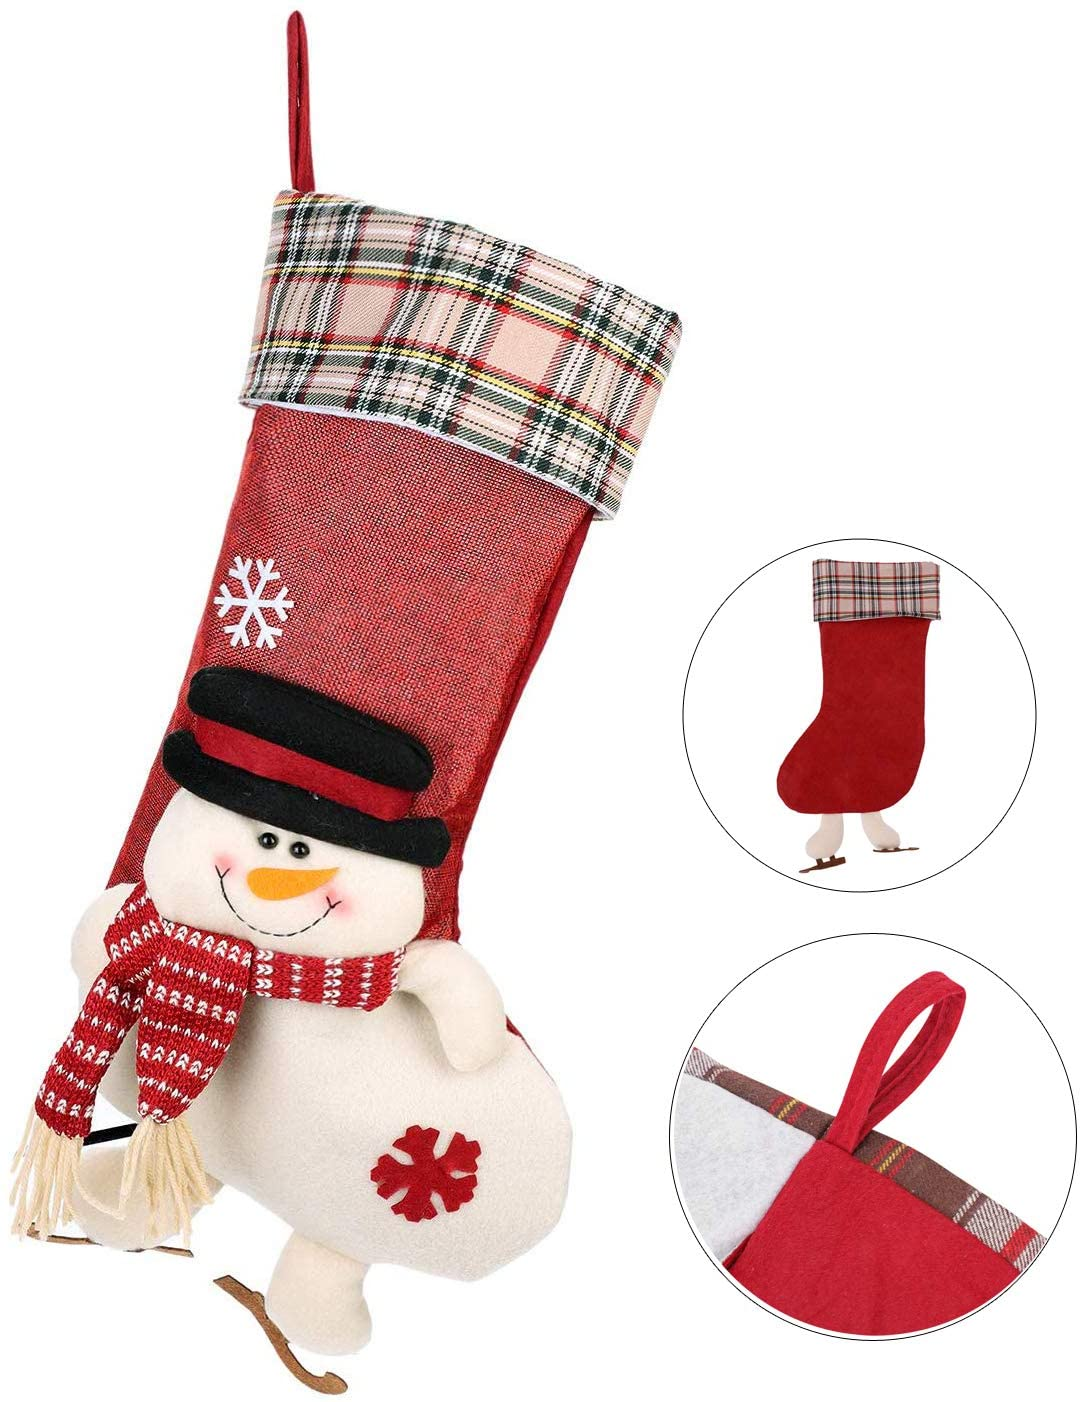 Christmas Stockings Holder Classic Snowman Santa Reindeer Fireplace Hanging Stockings Tree Decoration Christmas Ornament Large Candy Pouch Gift Bag 20X10 Inch